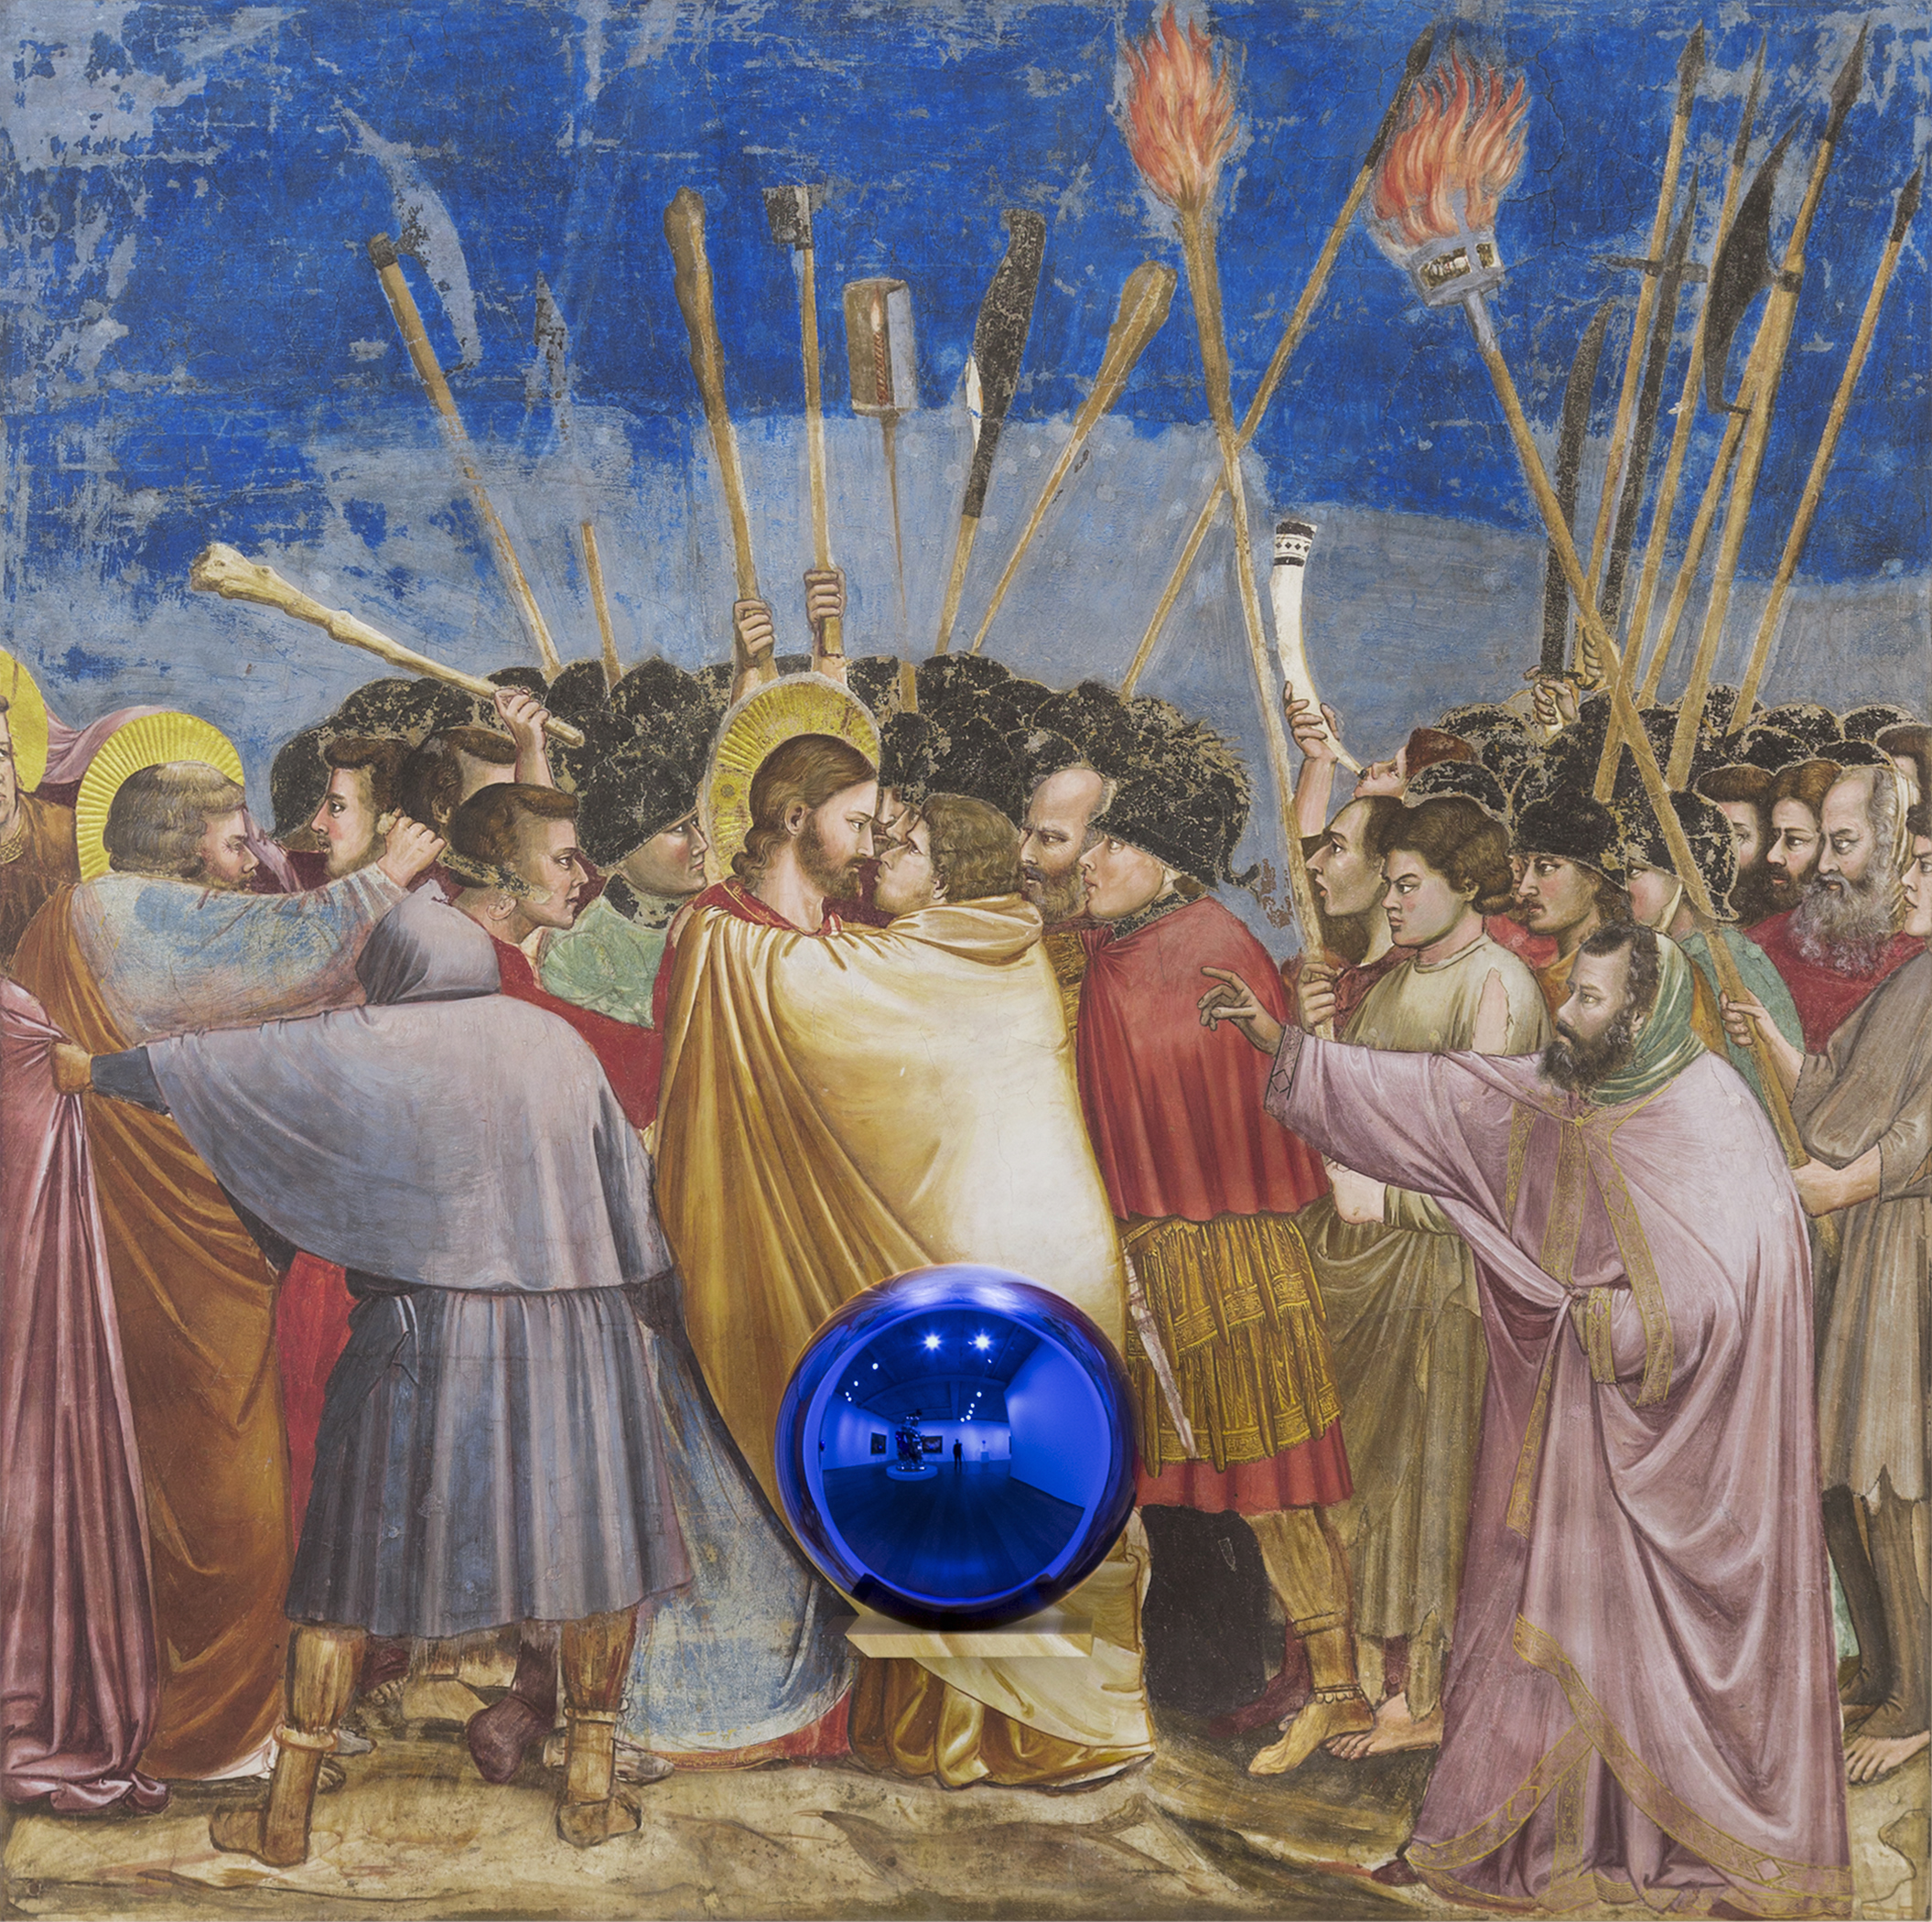 Jeff Koons  Gazing Ball (Giotto The Kiss of Judas) , 2015-2016 Oil on canvas, glass, and aluminum 65 1/2 x 65 x 14 3/4 inches (166.4 x 165.1 x 37.5 cm) © Jeff Koons. Courtesy David Zwirner, New York